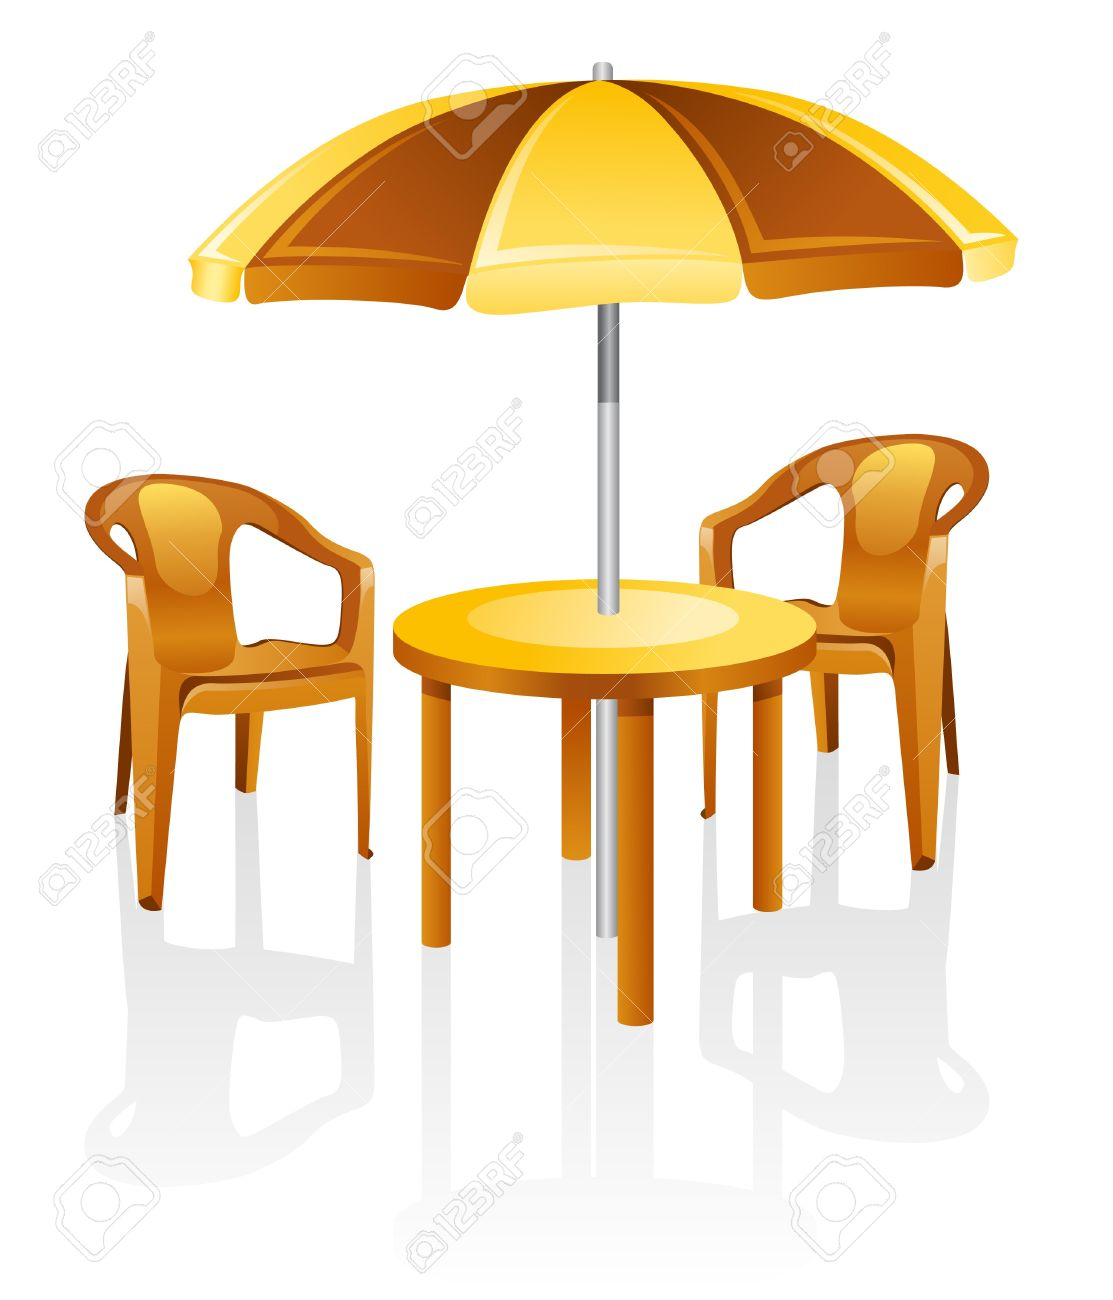 Cafe, garden furniture: table, chair, parasol.  Isolated on a white background. Stock Vector - 9925095